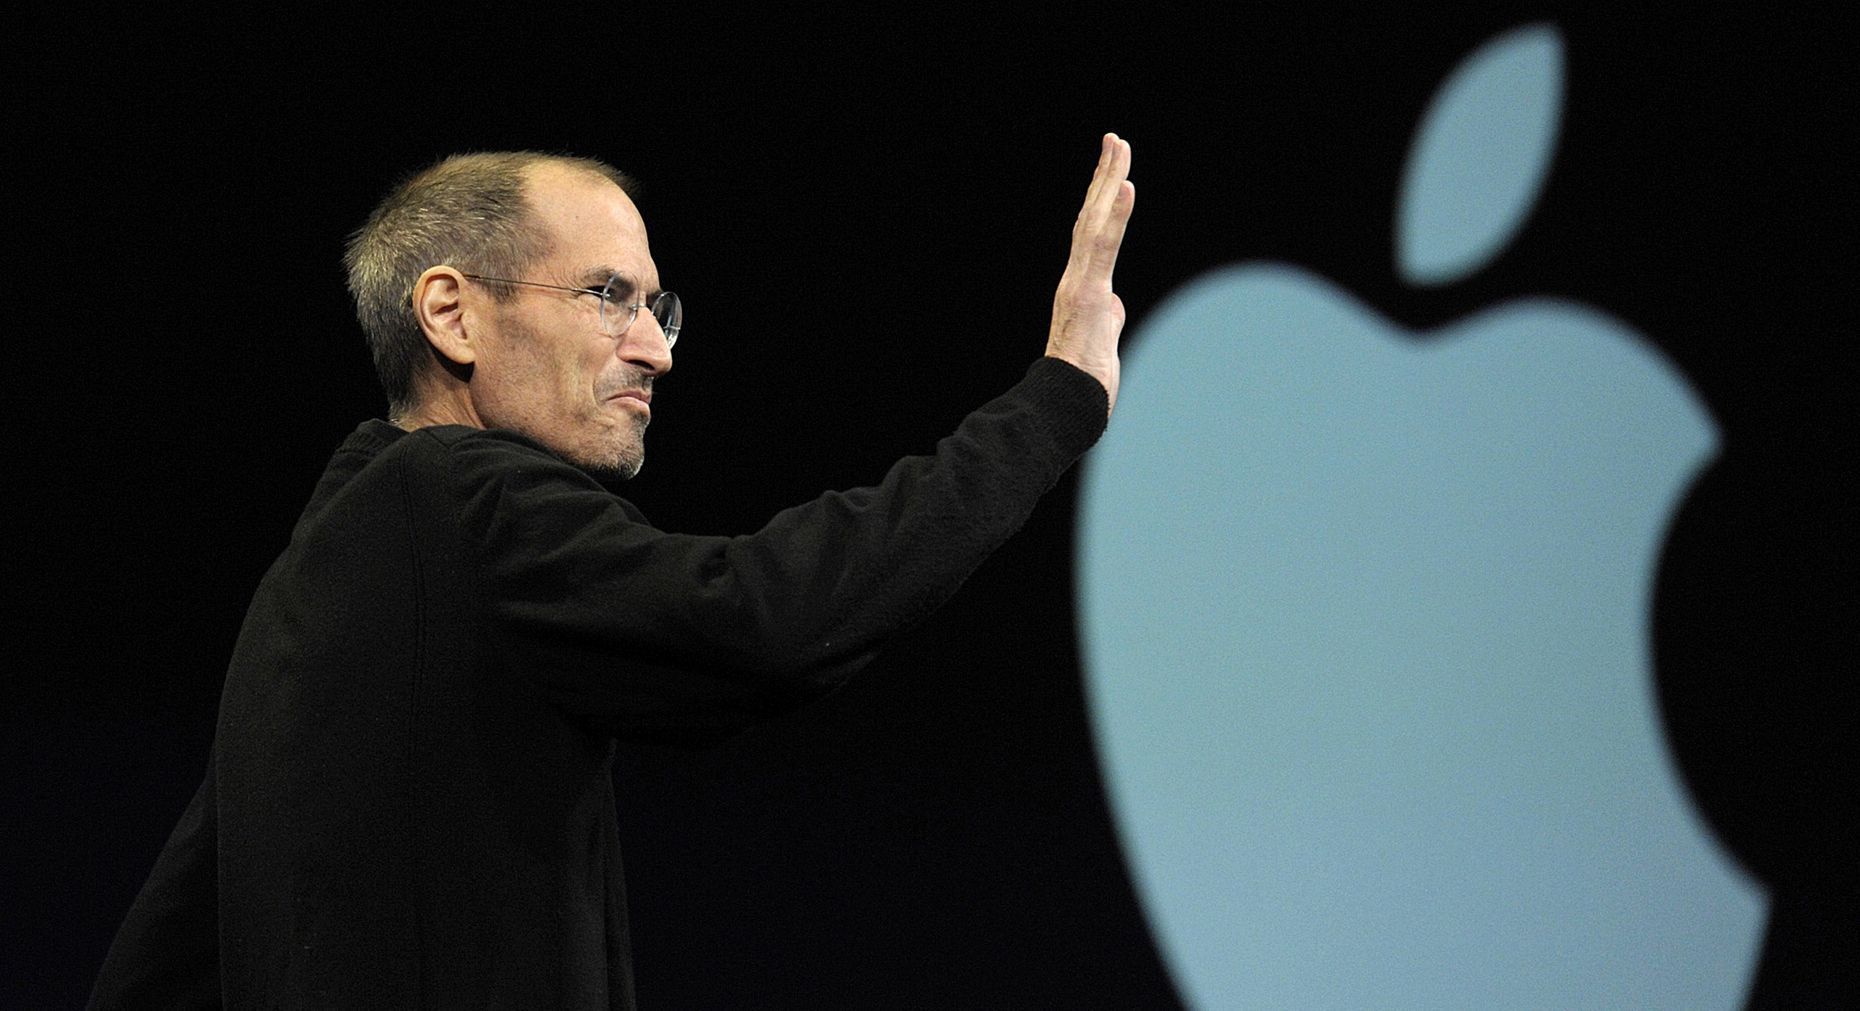 Steve Jobs announcing iCloud in 2011. Photo by Bloomberg.